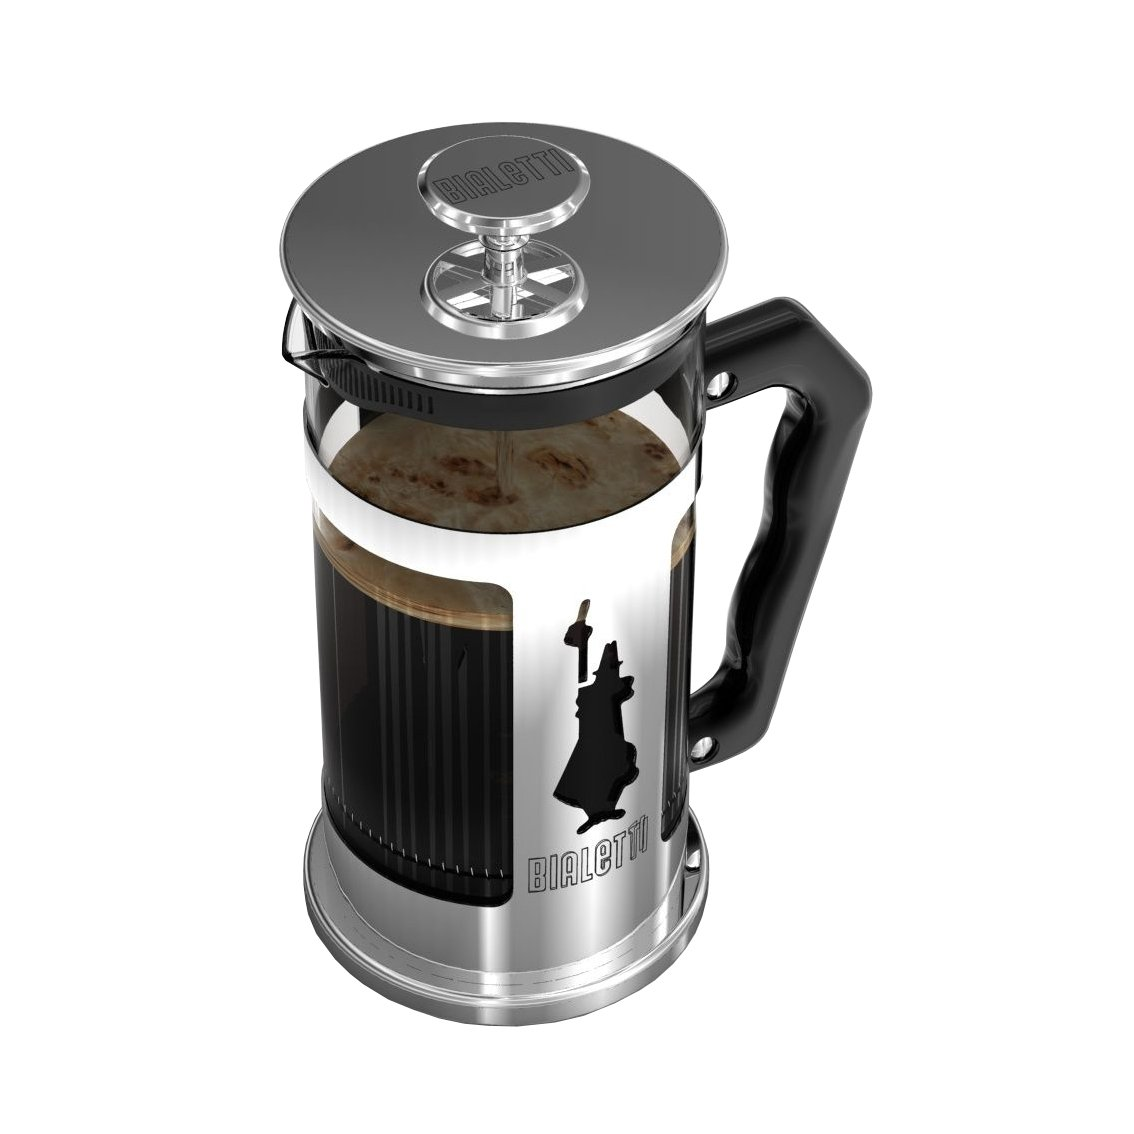 Bed bath beyond french press - Amazon Com Bialetti Preziosa 8 Cup French Press Coffee Maker Stainless Steel Silver Kitchen Dining